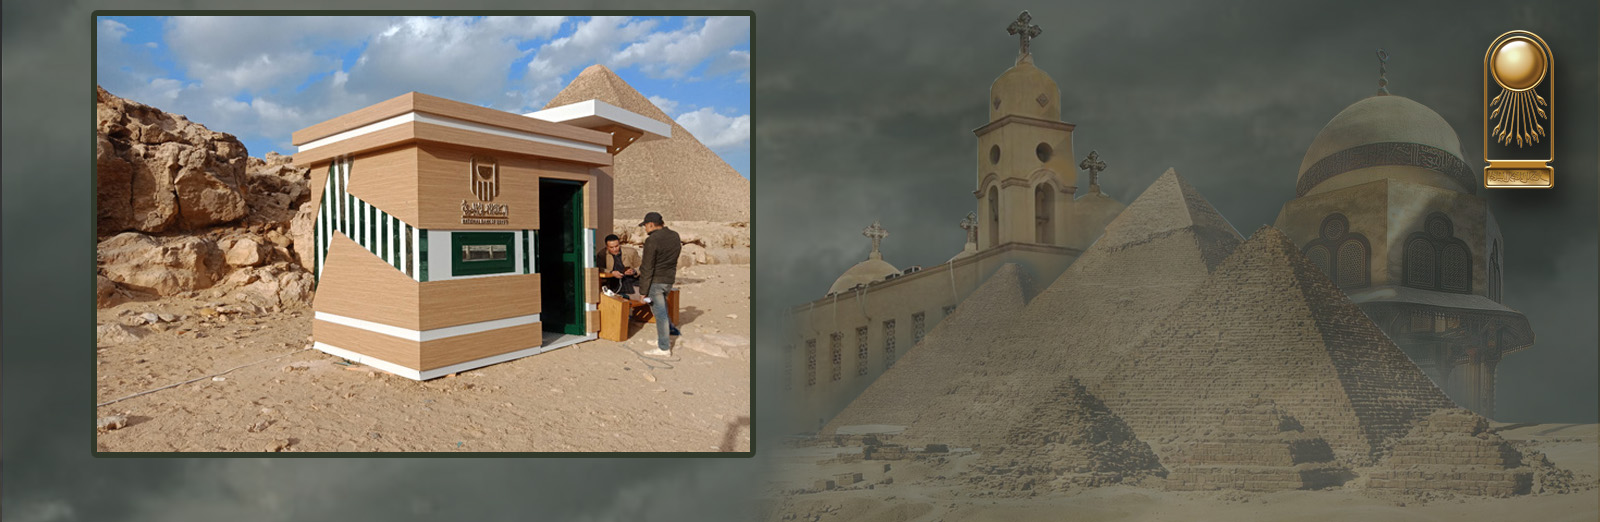 New services for visitors at archaeological sites in Egypt.